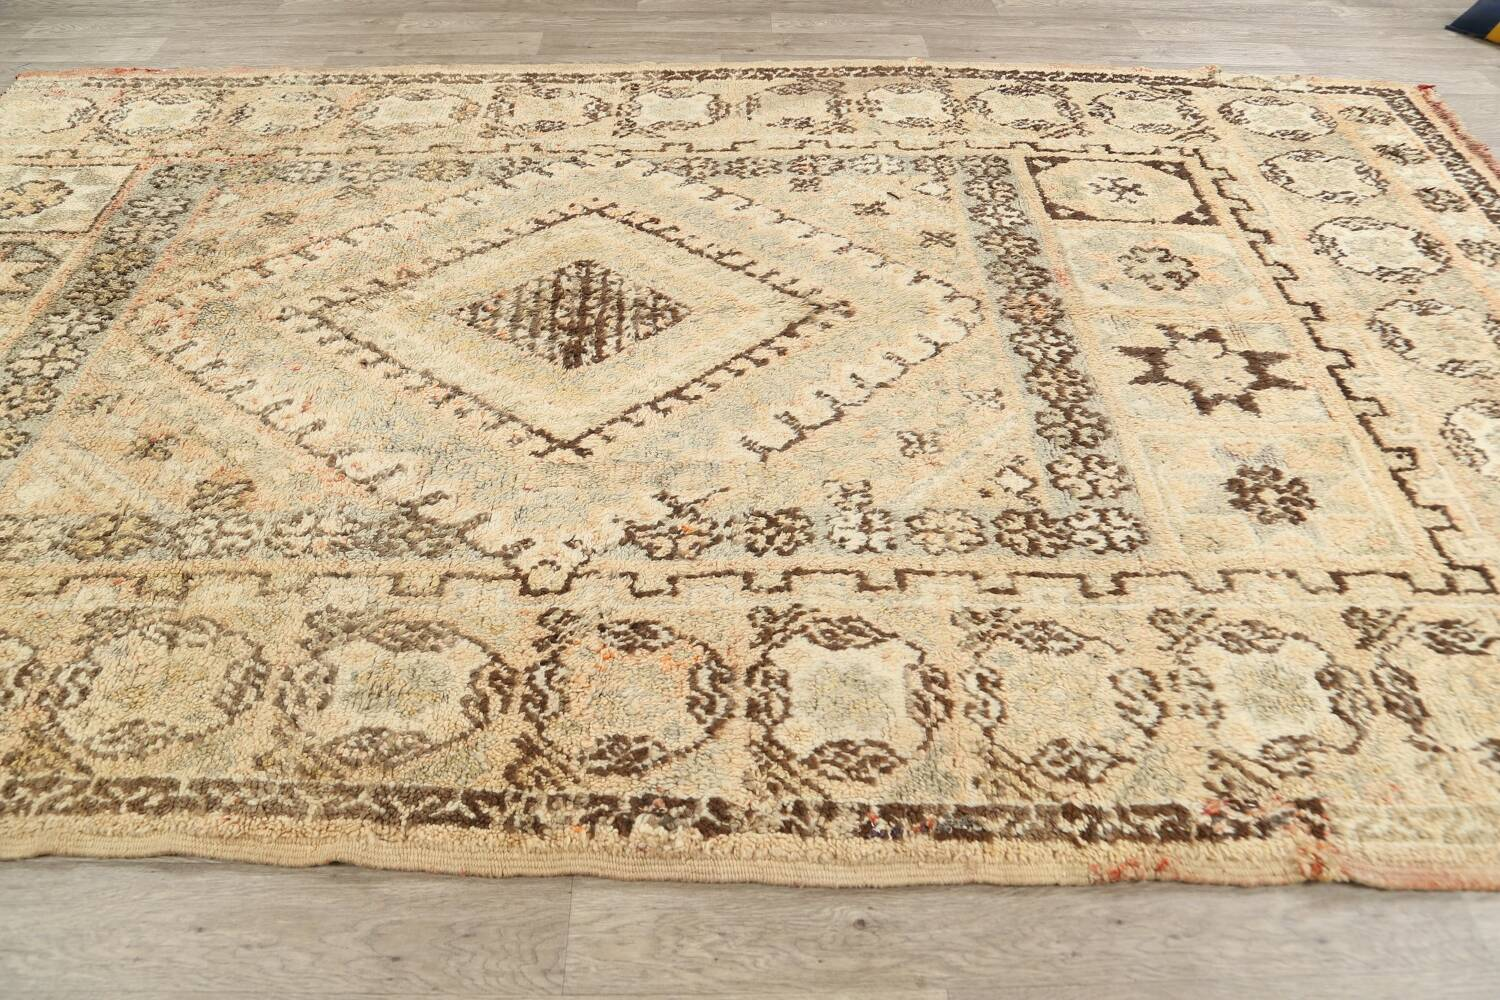 Antique Tribal Moroccan Oriental Area Rug 7x11 image 12